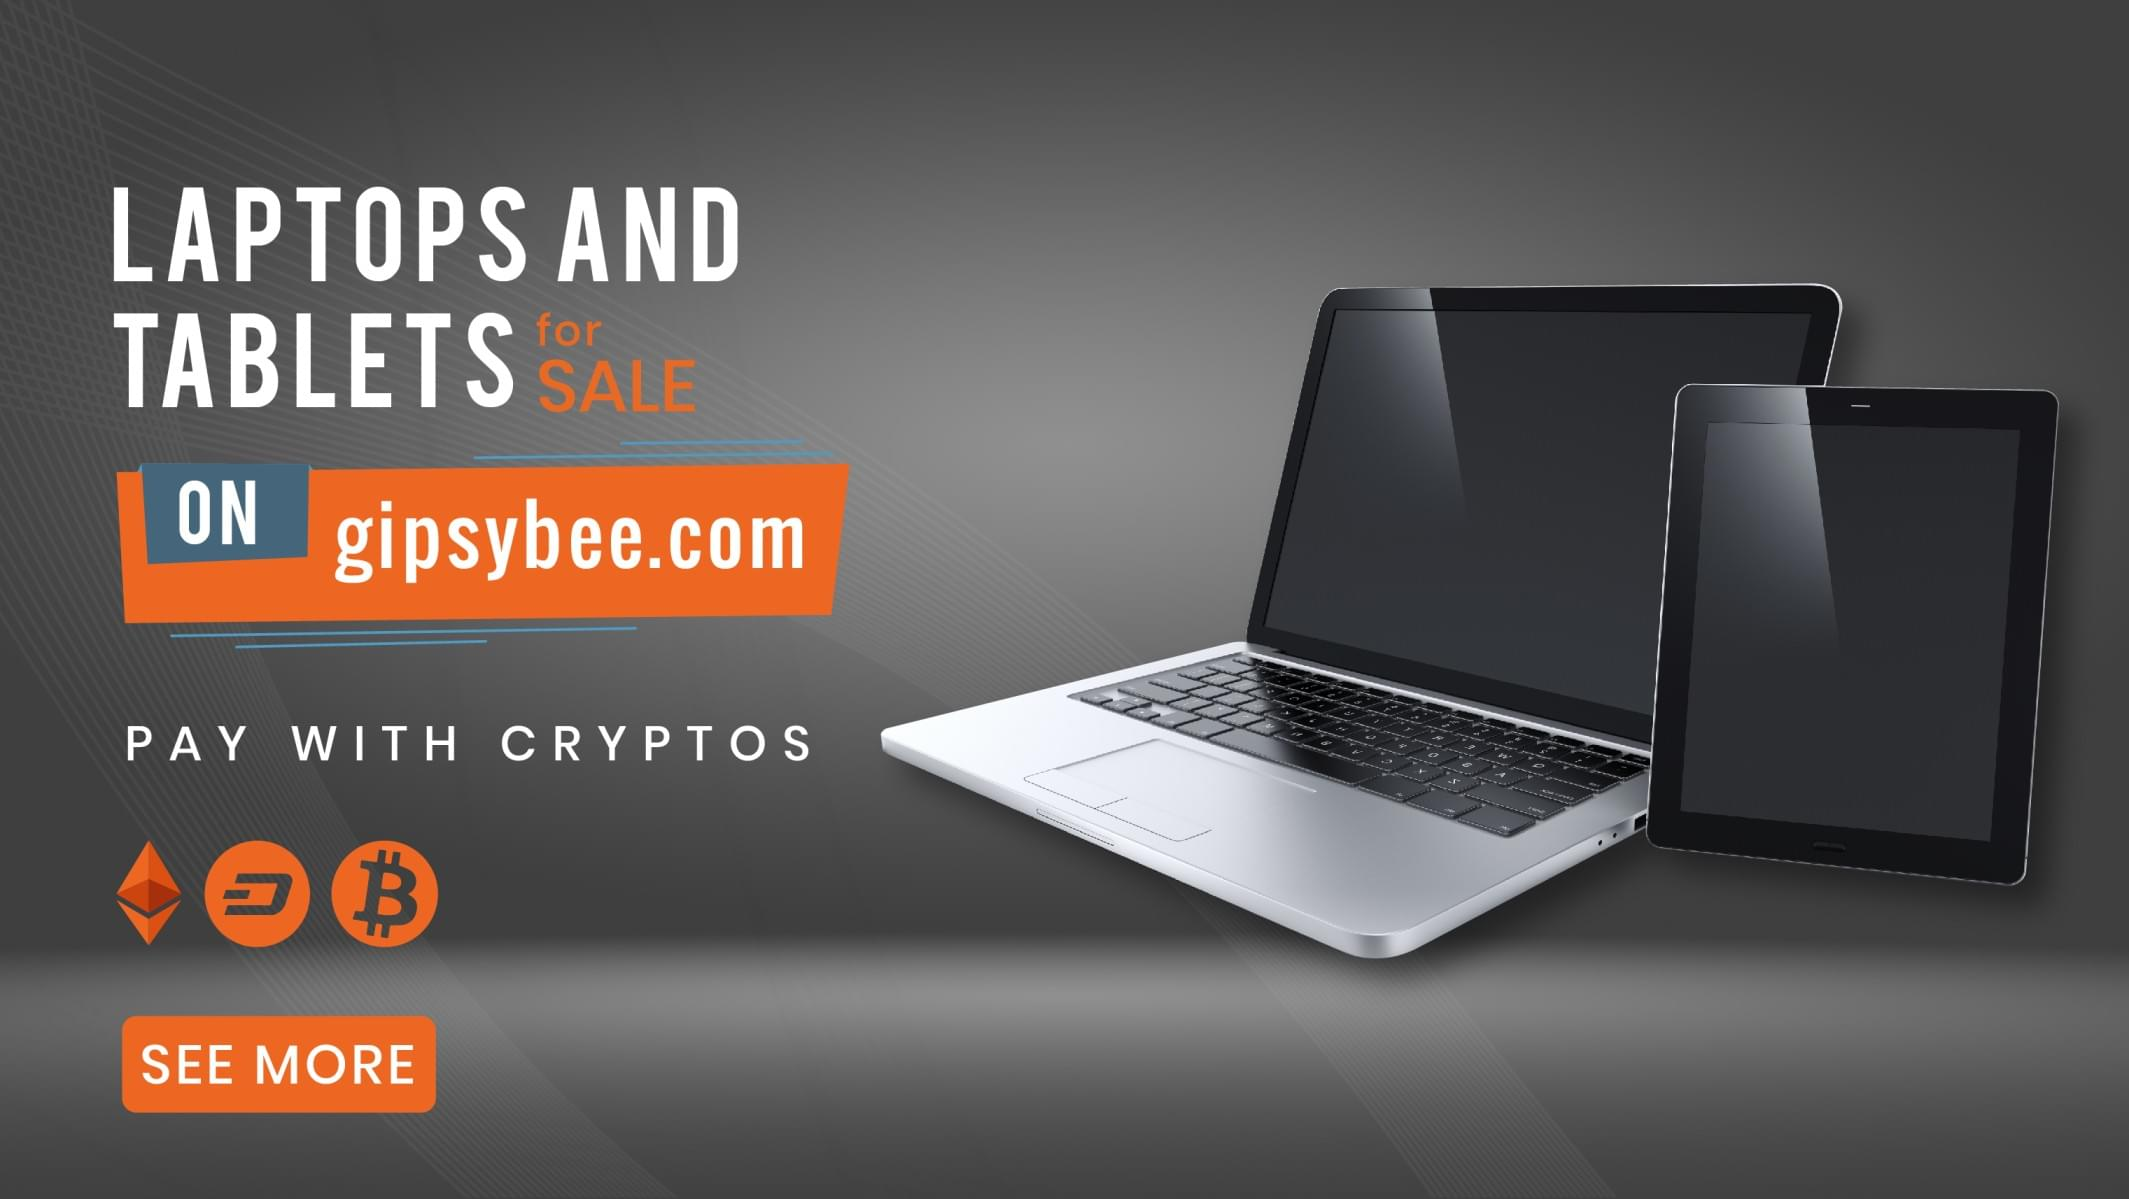 Buy Laptops and Tablets with Bitcoin, Ethereum, Litecoin, DASH, USDT, UTK on Gipsybee.com with FREE SHIPPING